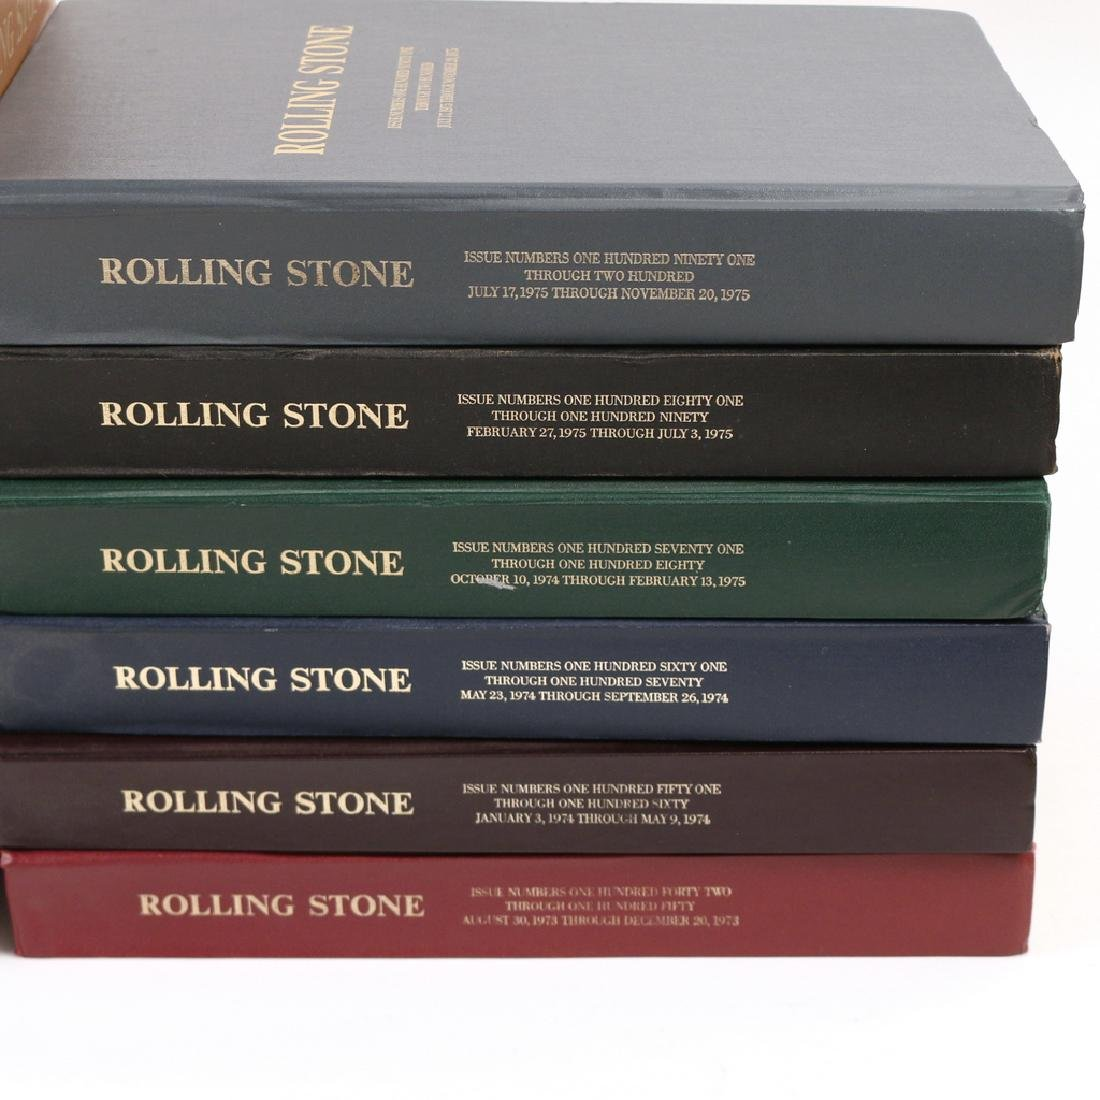 (21vol) ROLLING STONE MAGAZINE (ISSUES #1-250) - 9